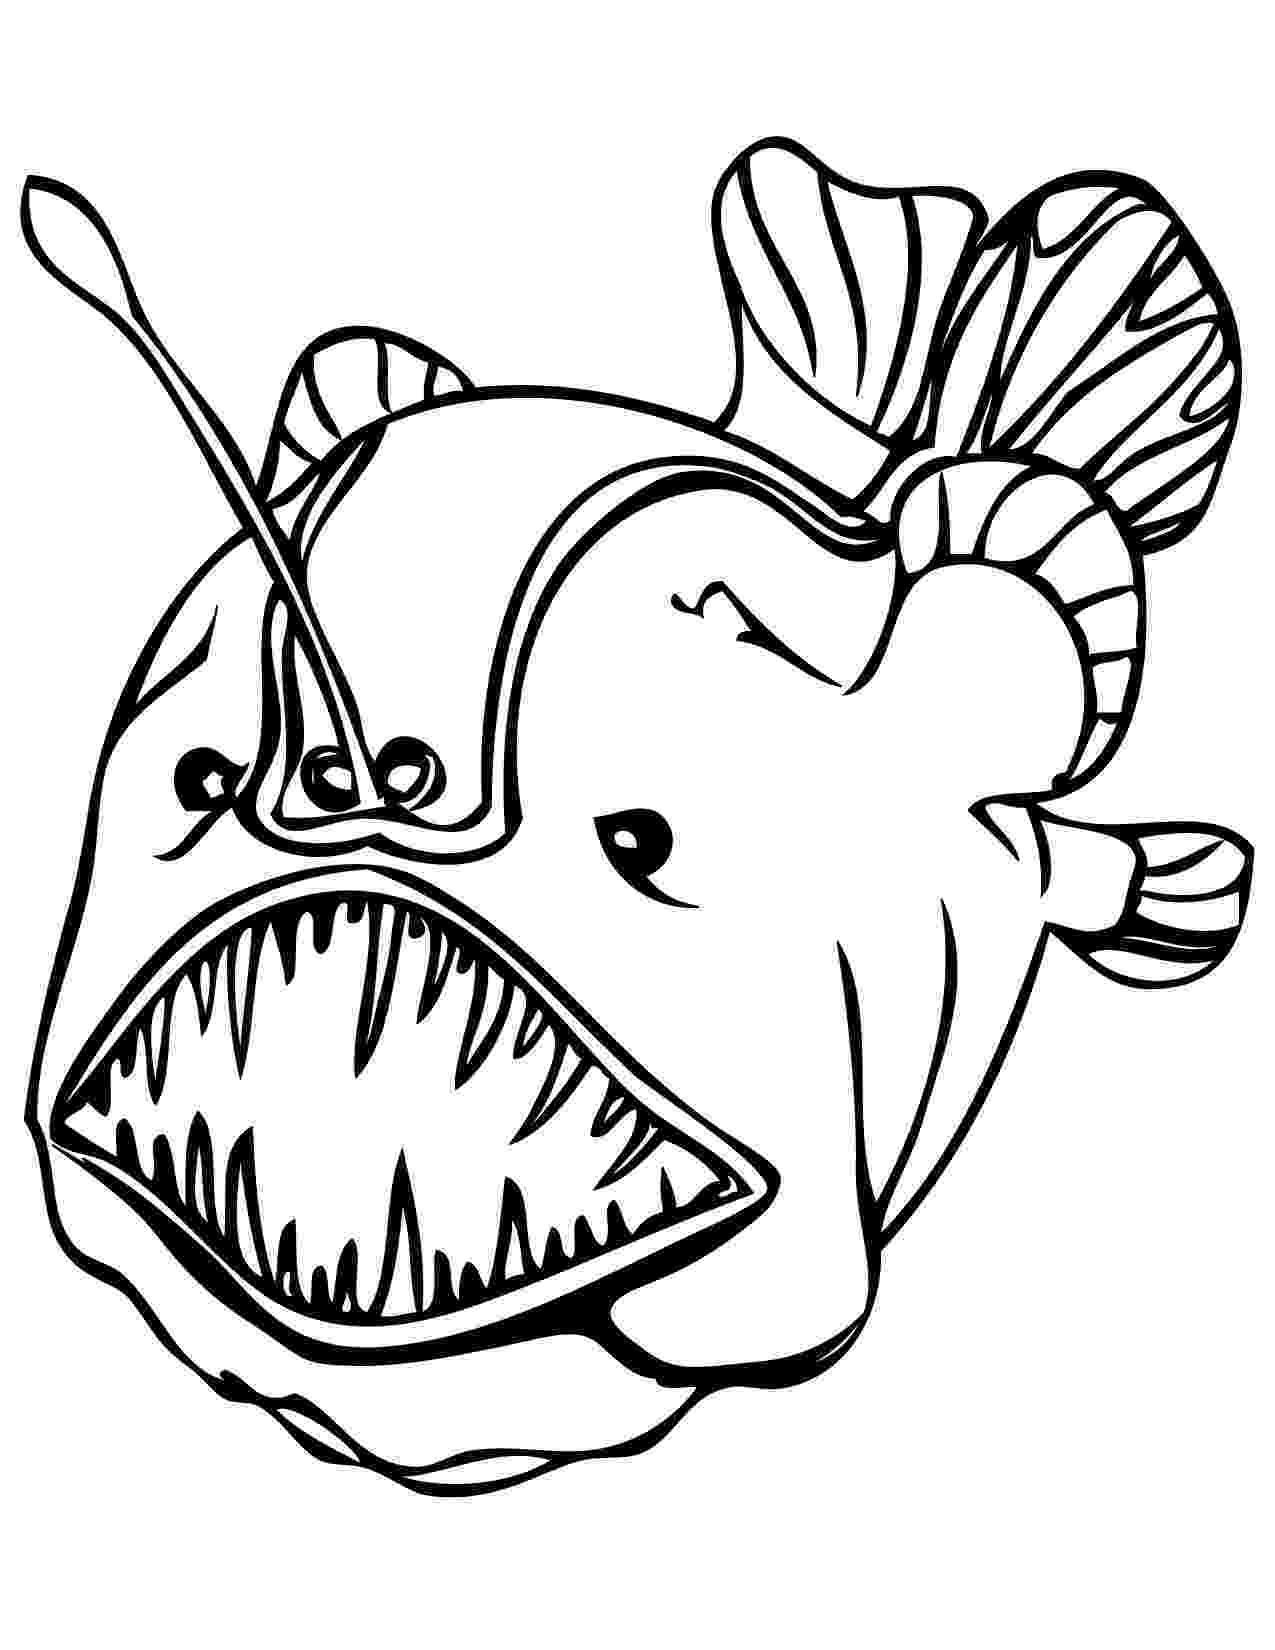 fish picture to color sea fish coloring pages download and print for free color to fish picture